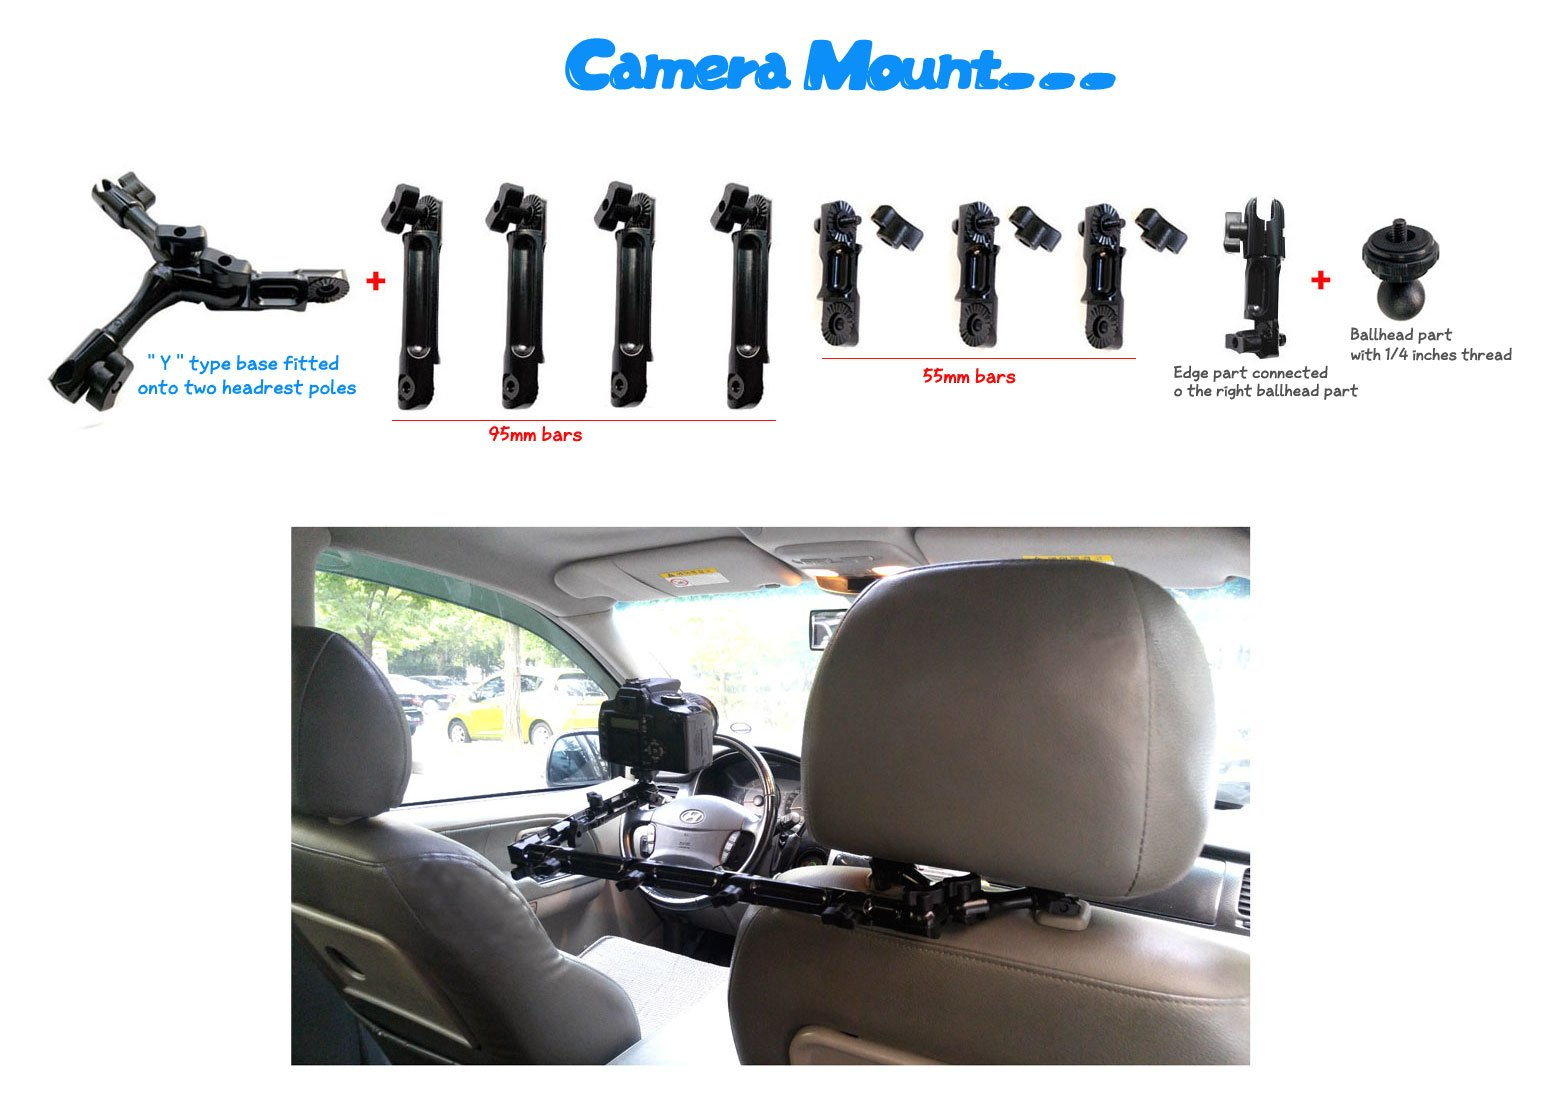 a LONG length type headrest mount bracket for a part for camera, camcorder and action cam with all metal sturdy frame(Y frame and 95mm+55mm bars) and 1/4 inches thread as a cam connecting part